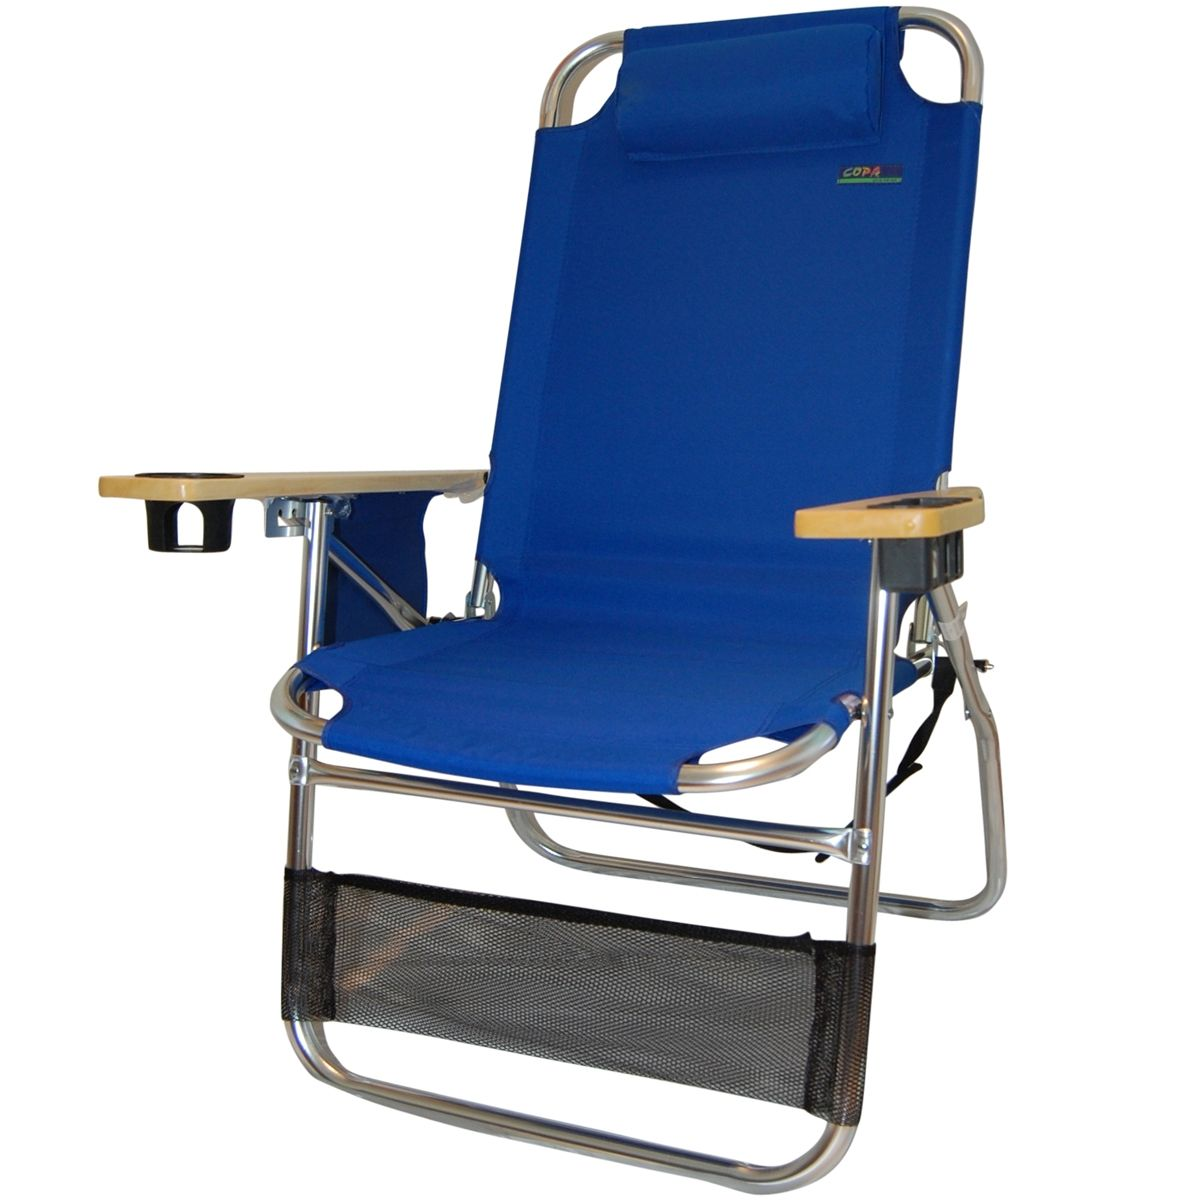 extra heavy duty folding chairs. Heavy Duty Folding Beach Chairs - Having Wooden At Home Provides You With The Convenience Of Providing Extra